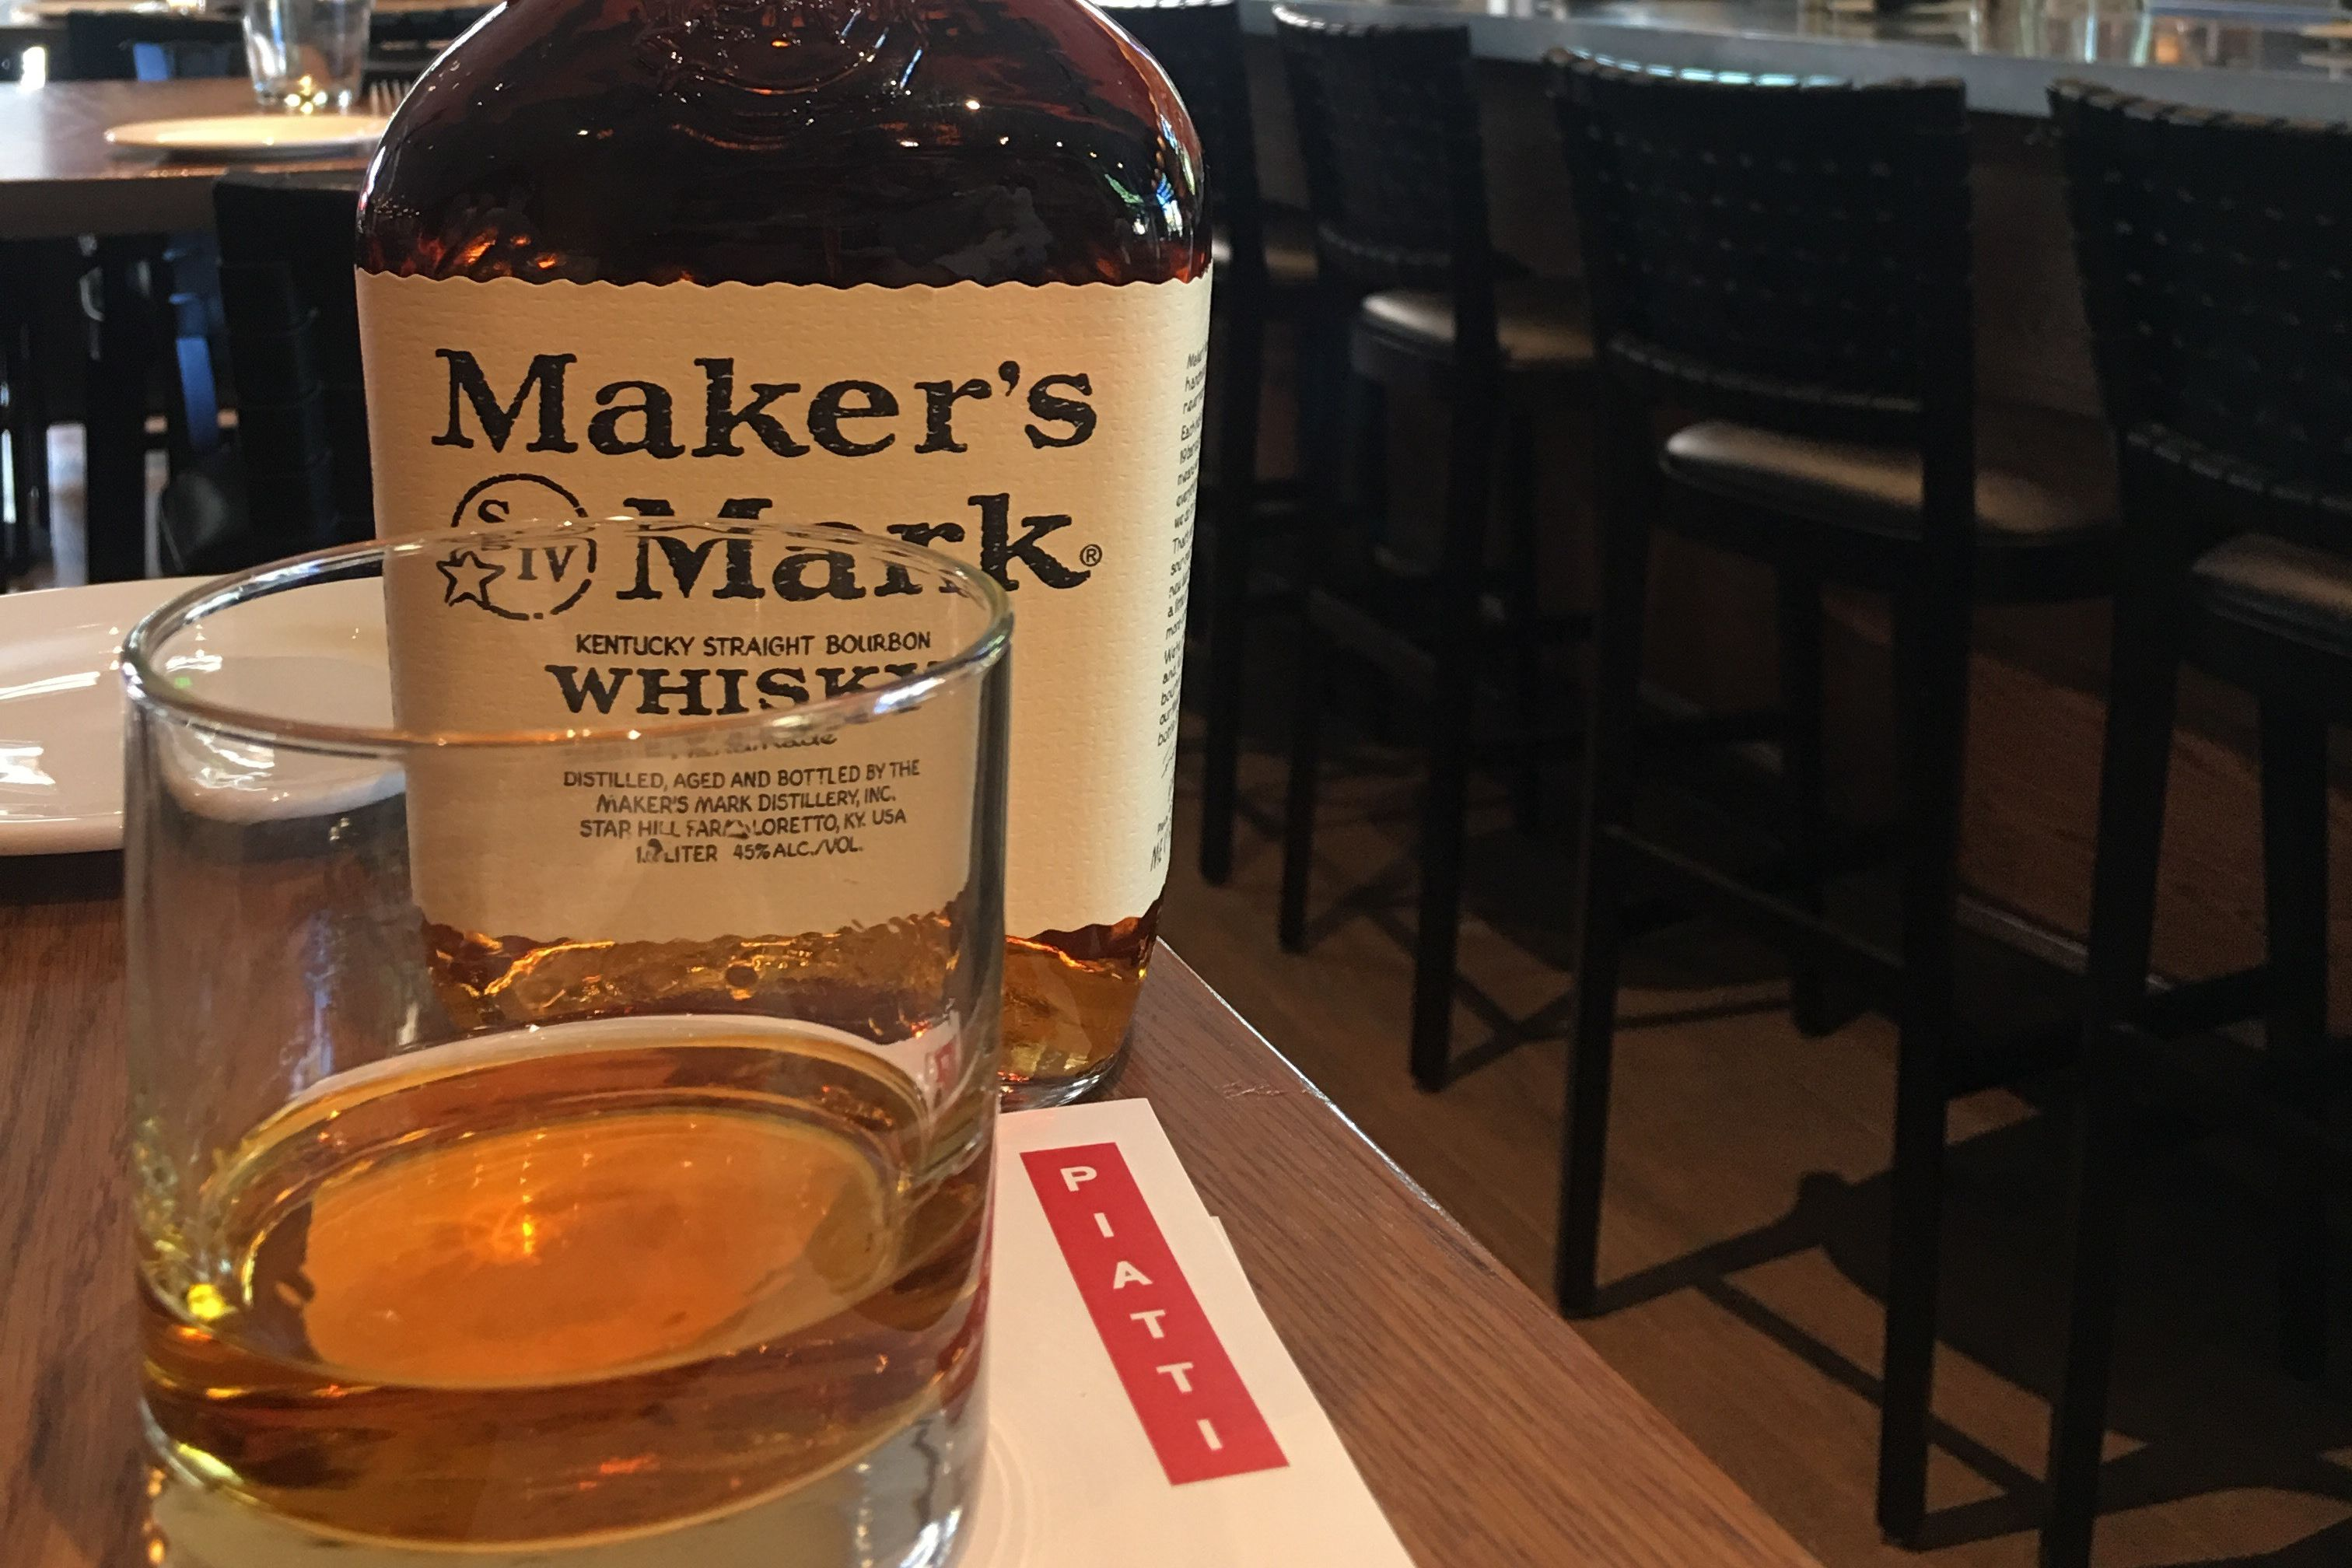 Piatti  makers mark  1  lbclg5